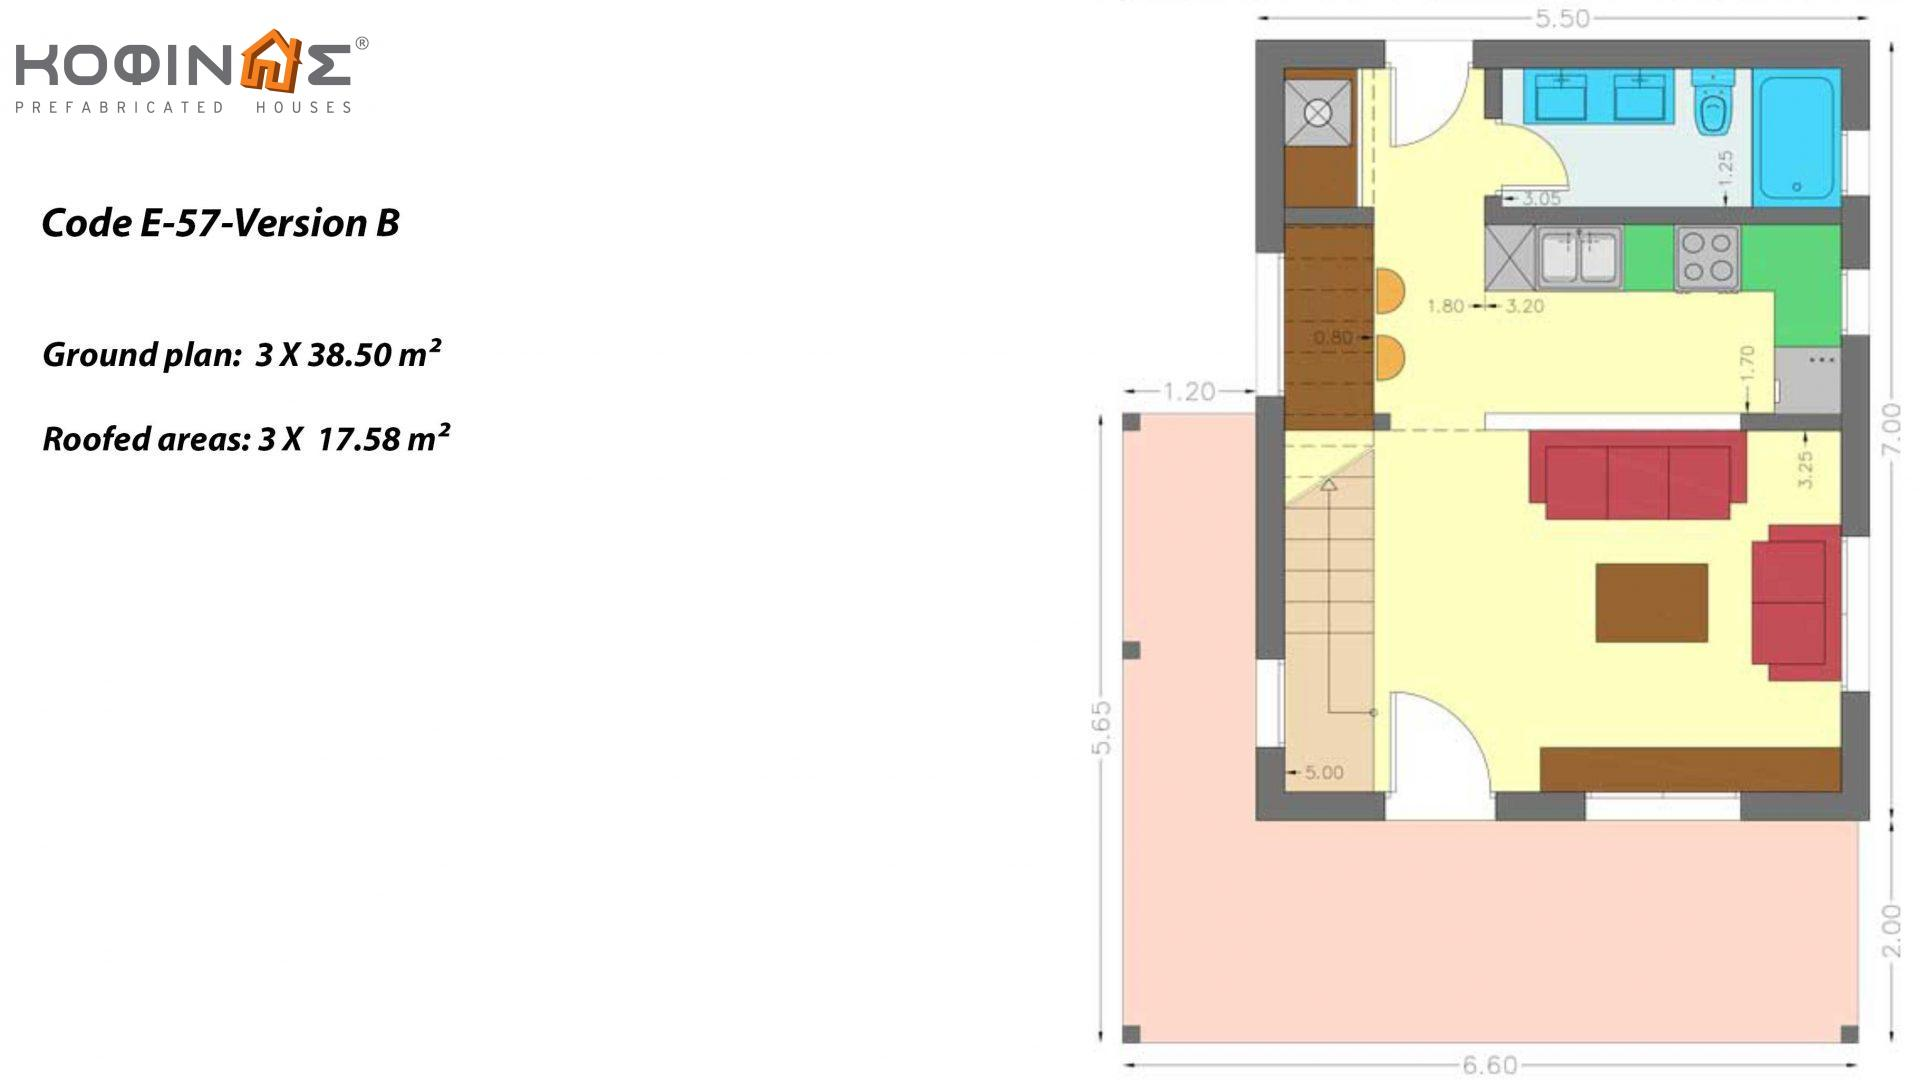 Complex of 1-story houses with attics E-57, total surface of 3 x 57,75 = 173,25 m², roofed areas 52.74 m²